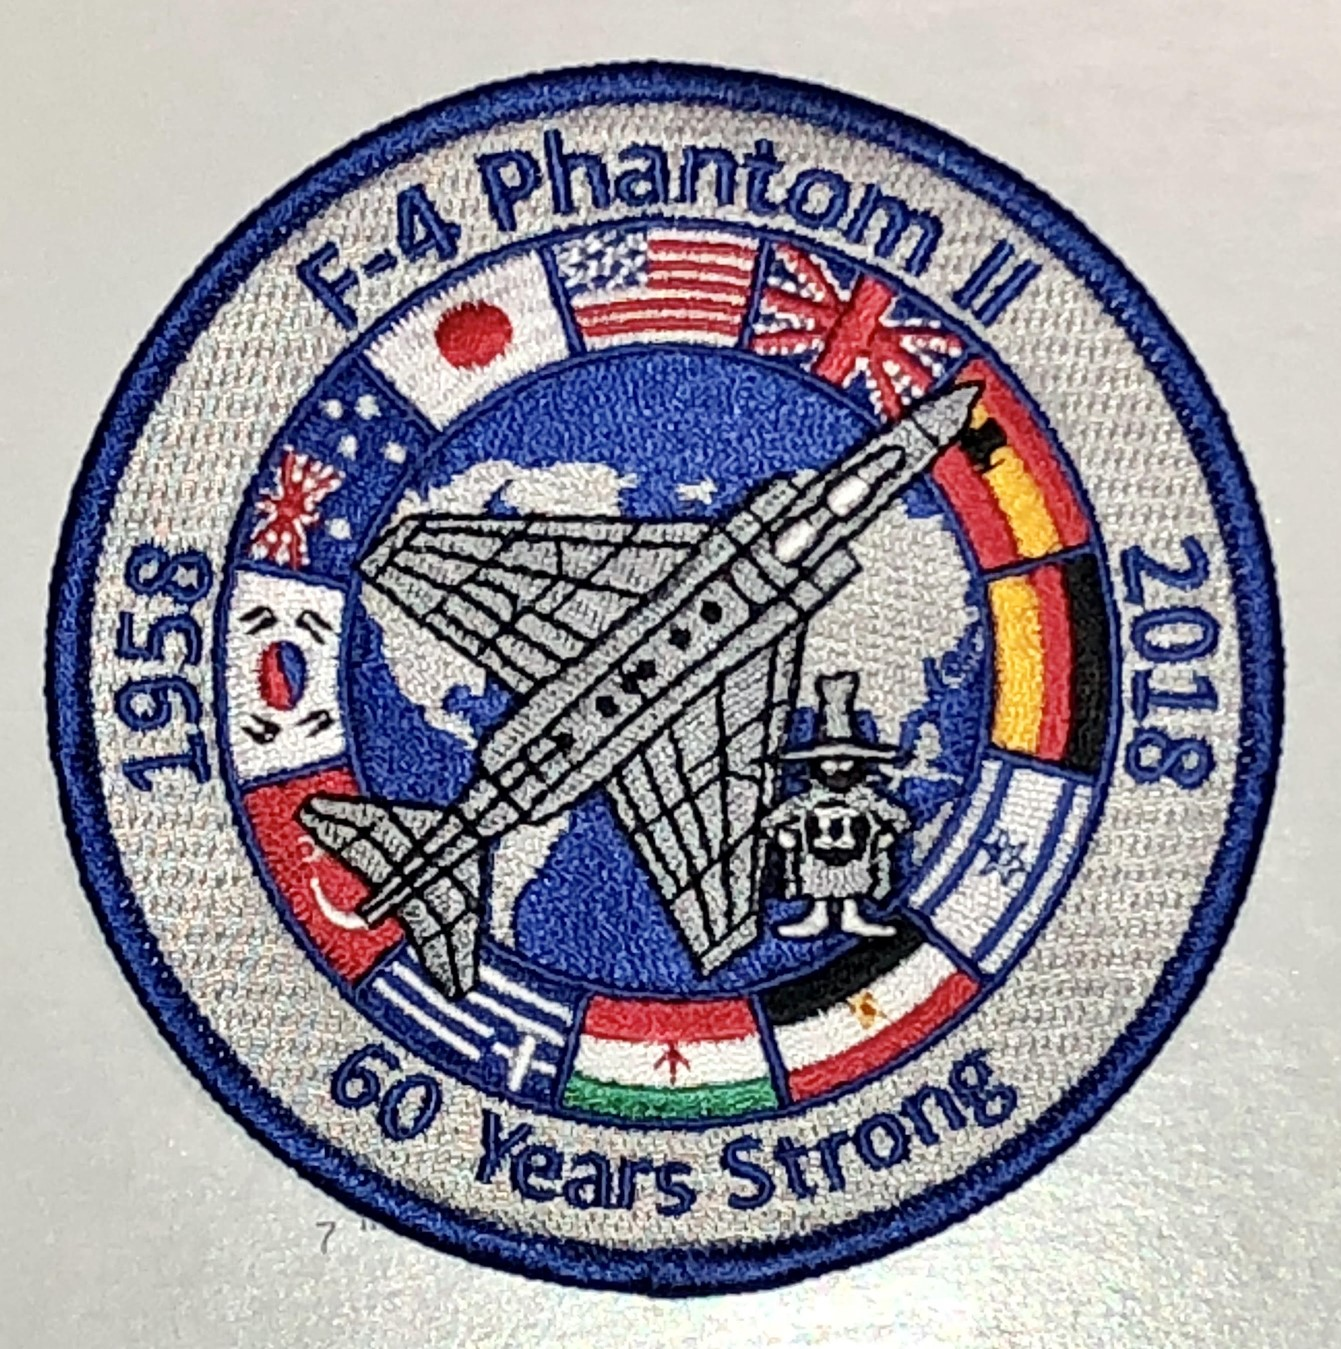 F 4 Phantom Ii Society Rvca Circuit Tshirt Shortsleeve Boys39 60th Anniversary T Shirts And Patches Are Now Available In The Store Celebrate Phantoms Diamond